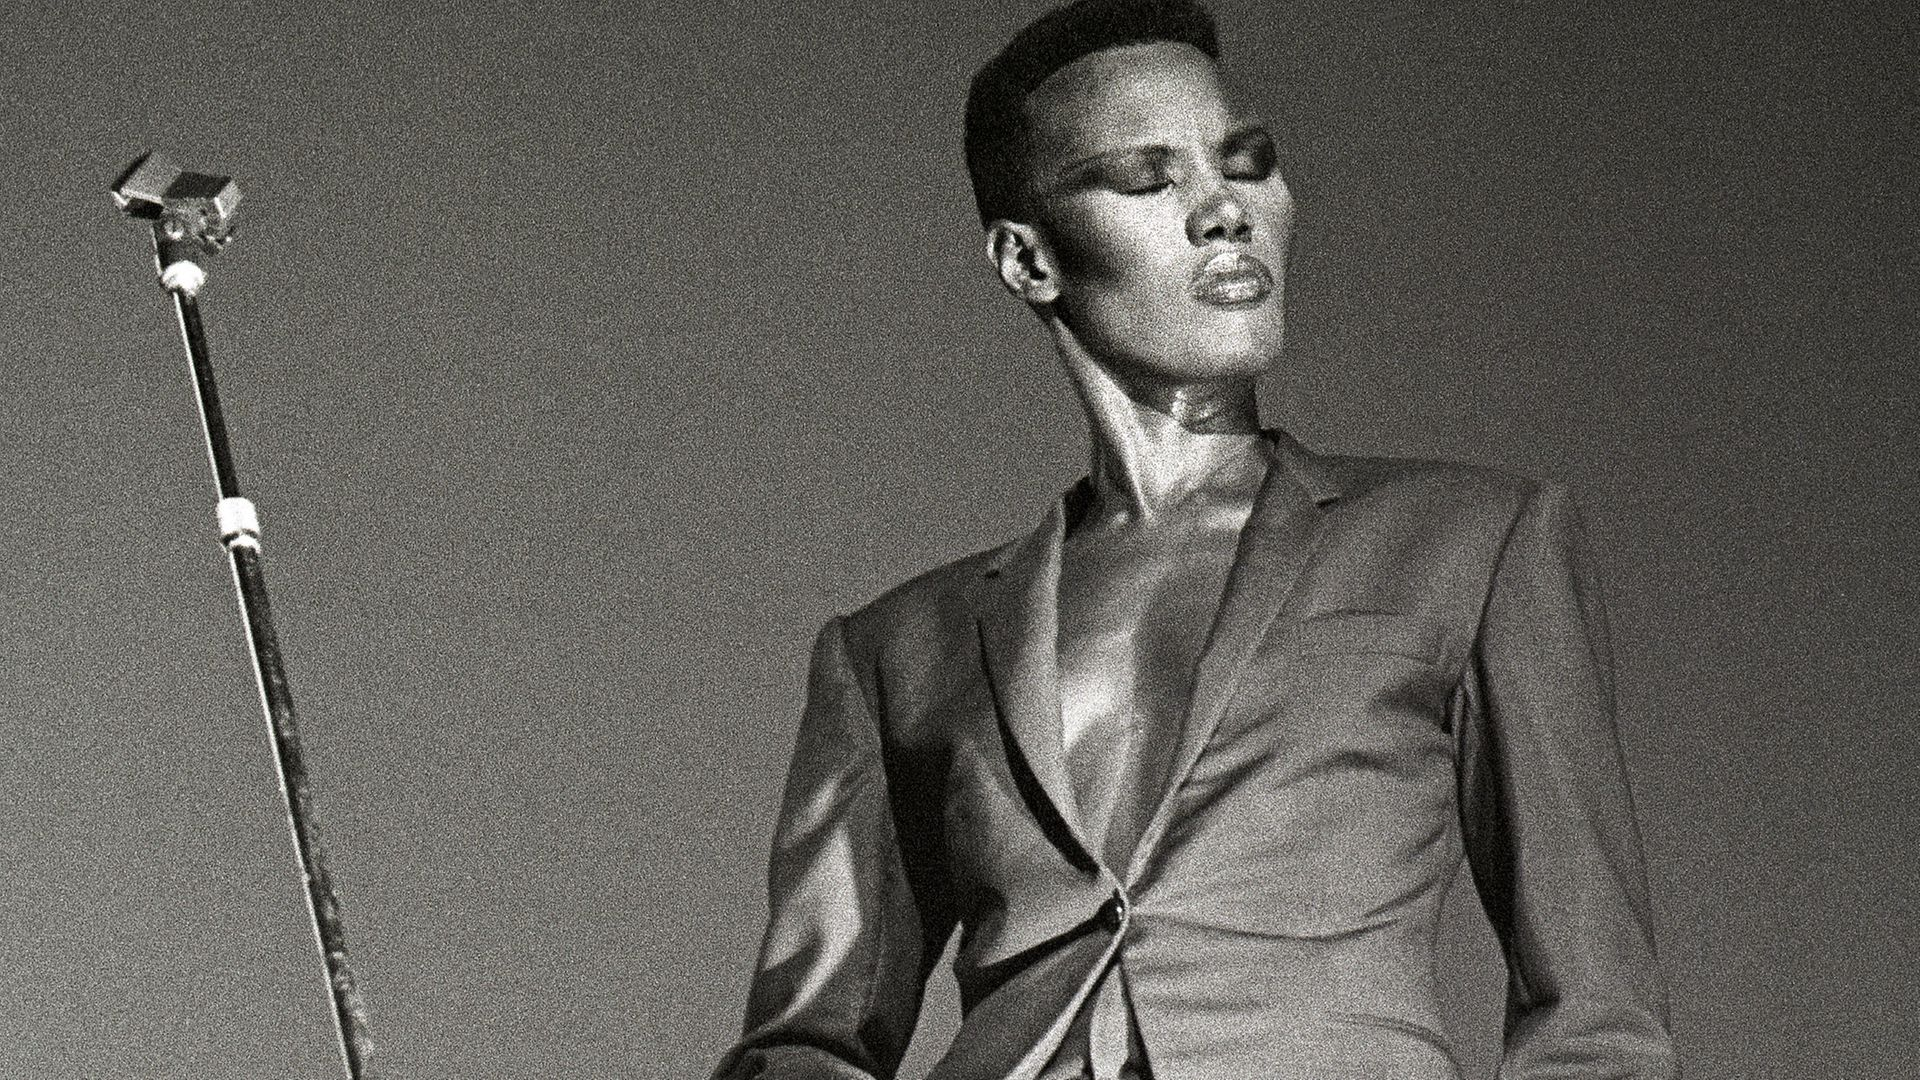 Grace Jones at the Carre theatre, Amsterdam, in 1981 - Credit: Redferns